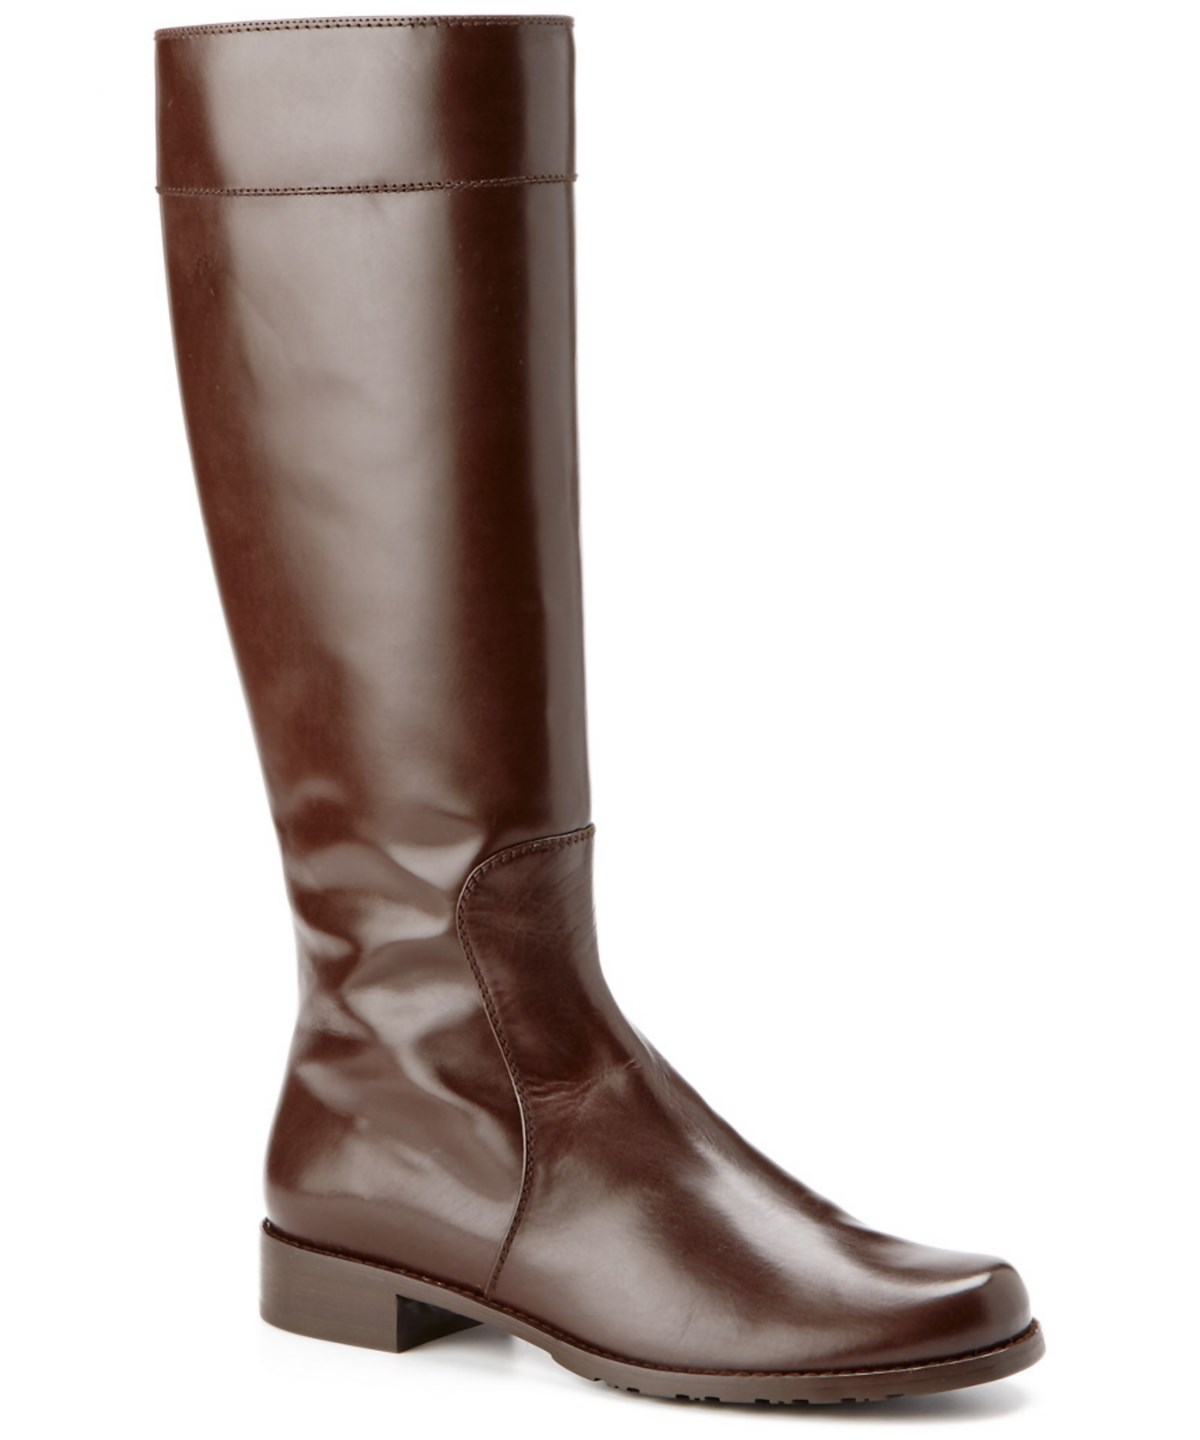 Stuart Weitzman Traveler Leather Boot In Multiple Colors